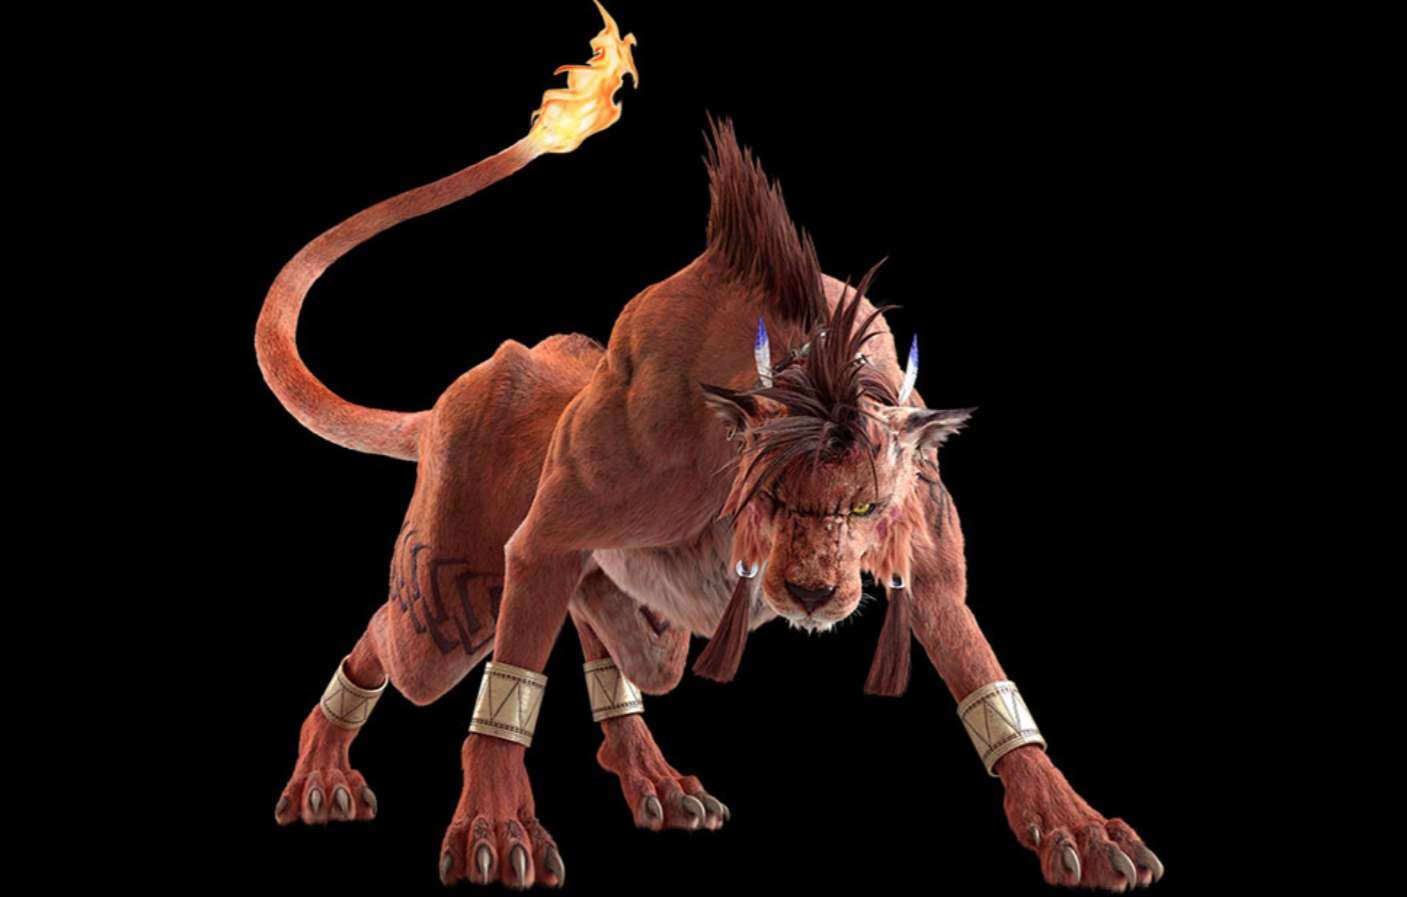 Final Fantasy VII Remake Tweets Images Of Red XIII With Some Backstory On The Character